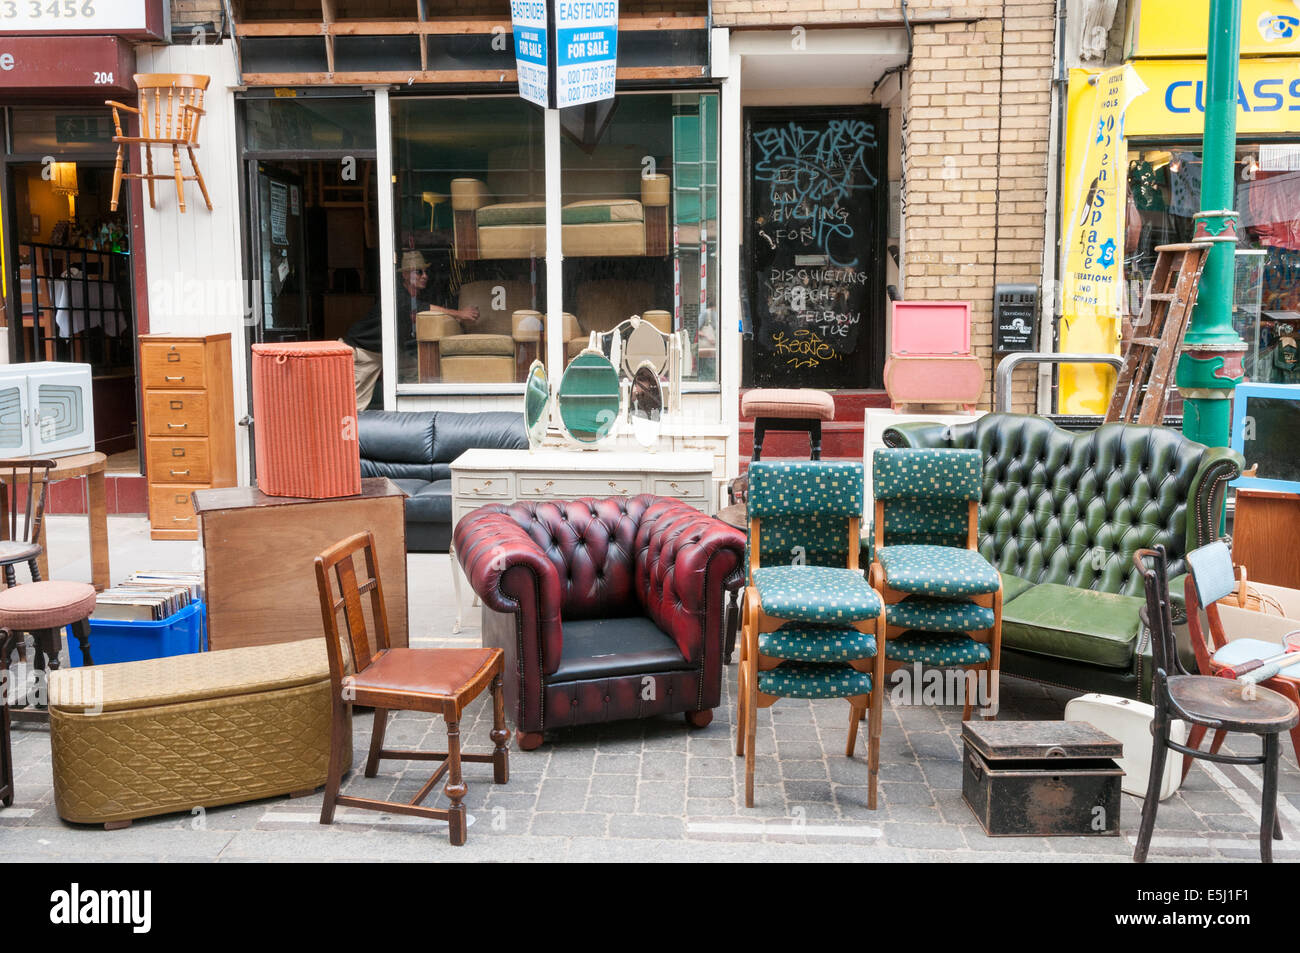 2Nd Hand Furniture Stores Pleasing Used Furniture Stock Photos & Used Furniture Stock Images  Alamy Decorating Inspiration